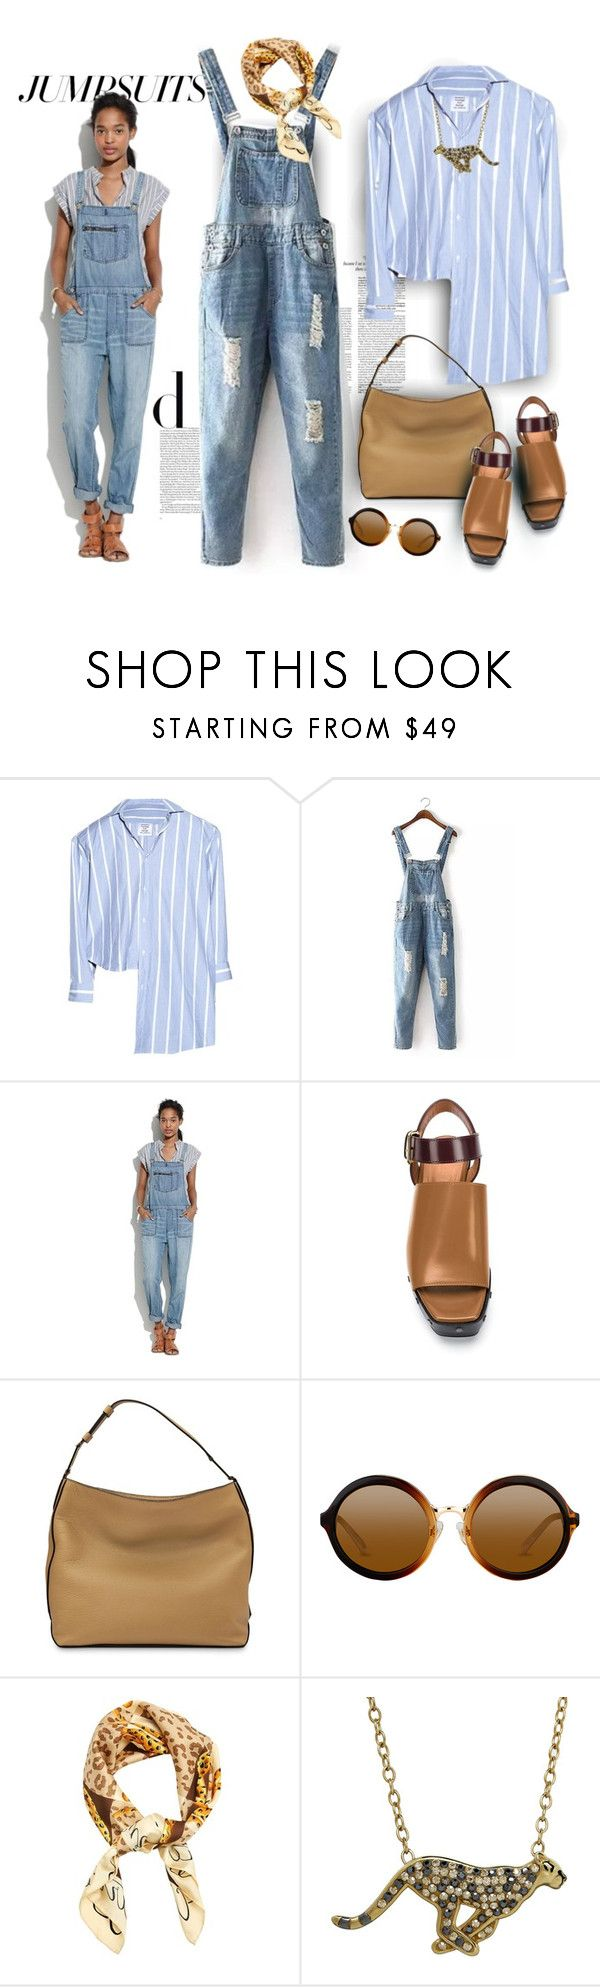 """One and Done: Jumpsuits"" by ysmn-pan ❤ liked on Polyvore featuring Vetements, Madewell, Marni, Lancel, Cartier, Animal Planet, contest and jumpsuits"